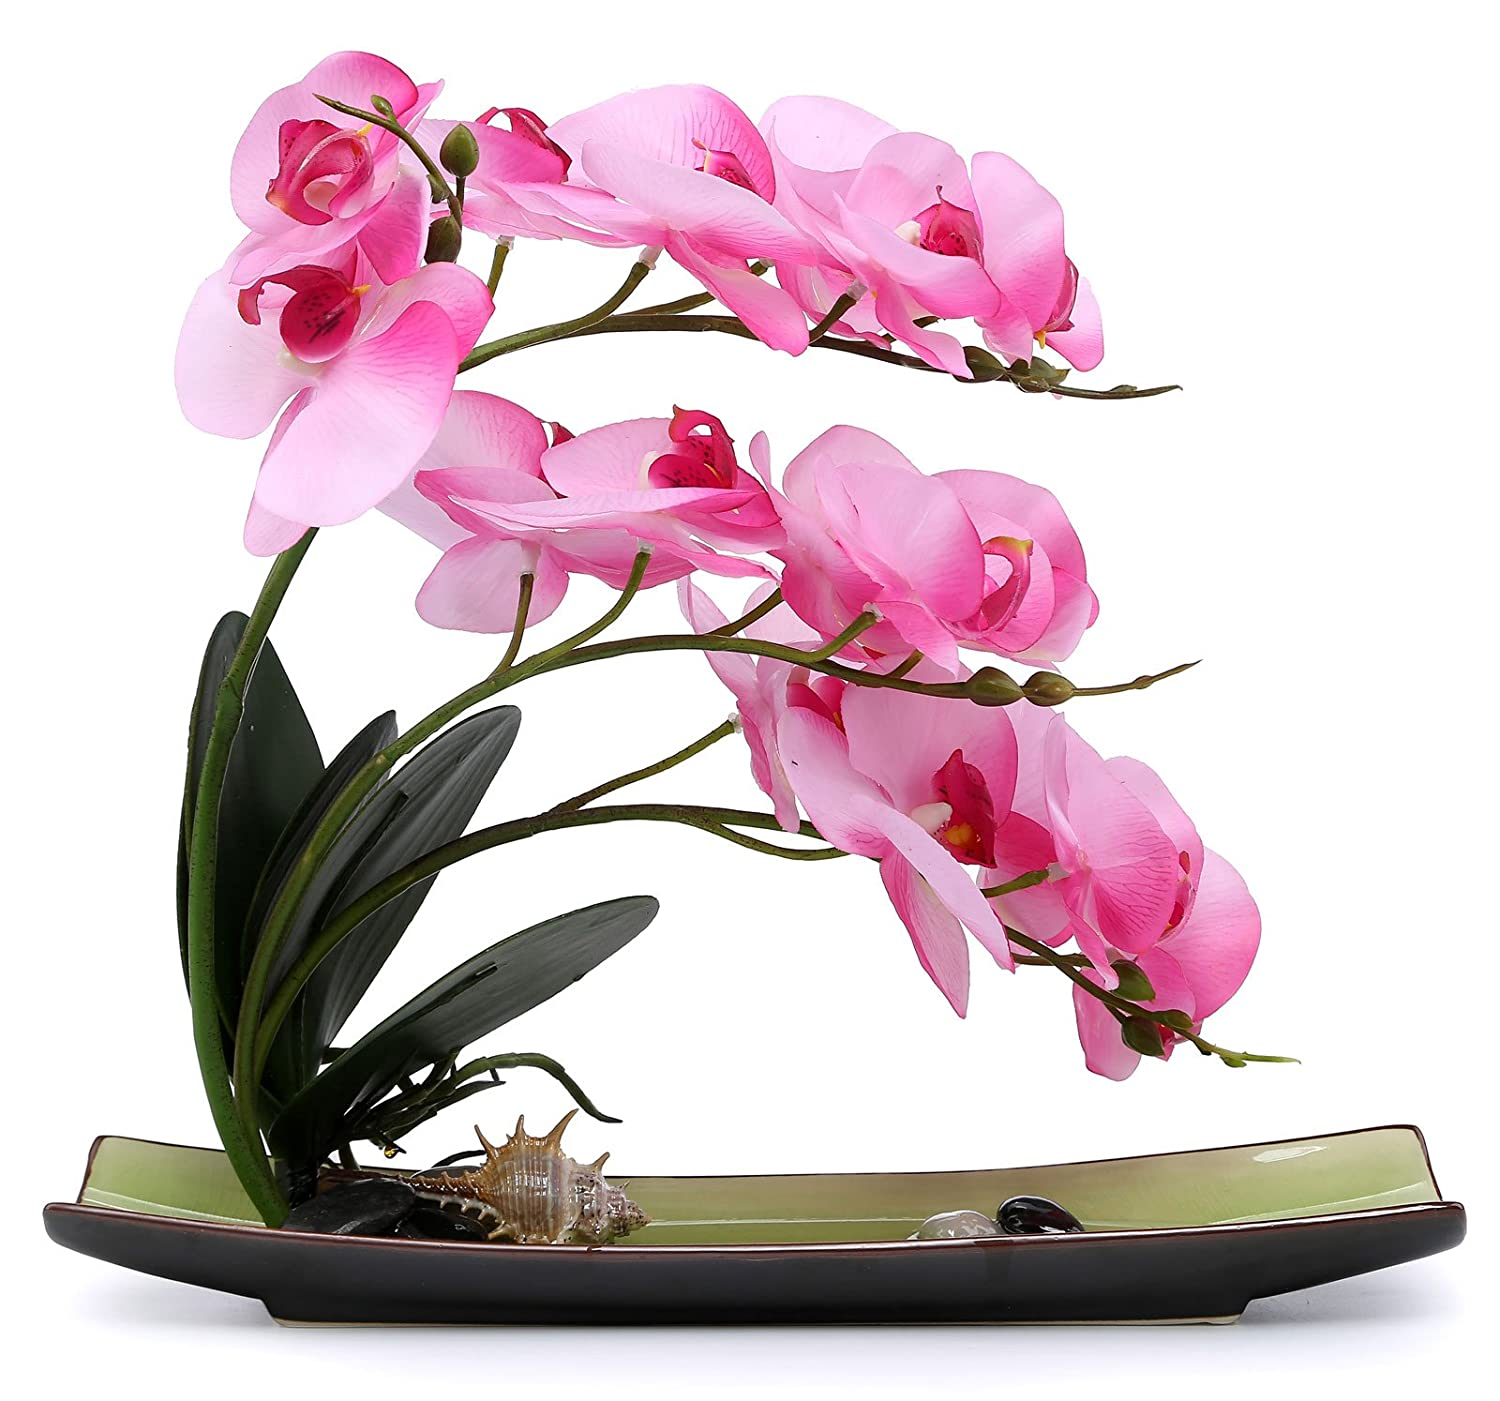 NNEE人工胡蝶蘭Orchid /シルクFlower Arrangement with Decorative Flower Pot NNEE_AF325_Pink B07C8H4TQ2 Pink Orchild A325